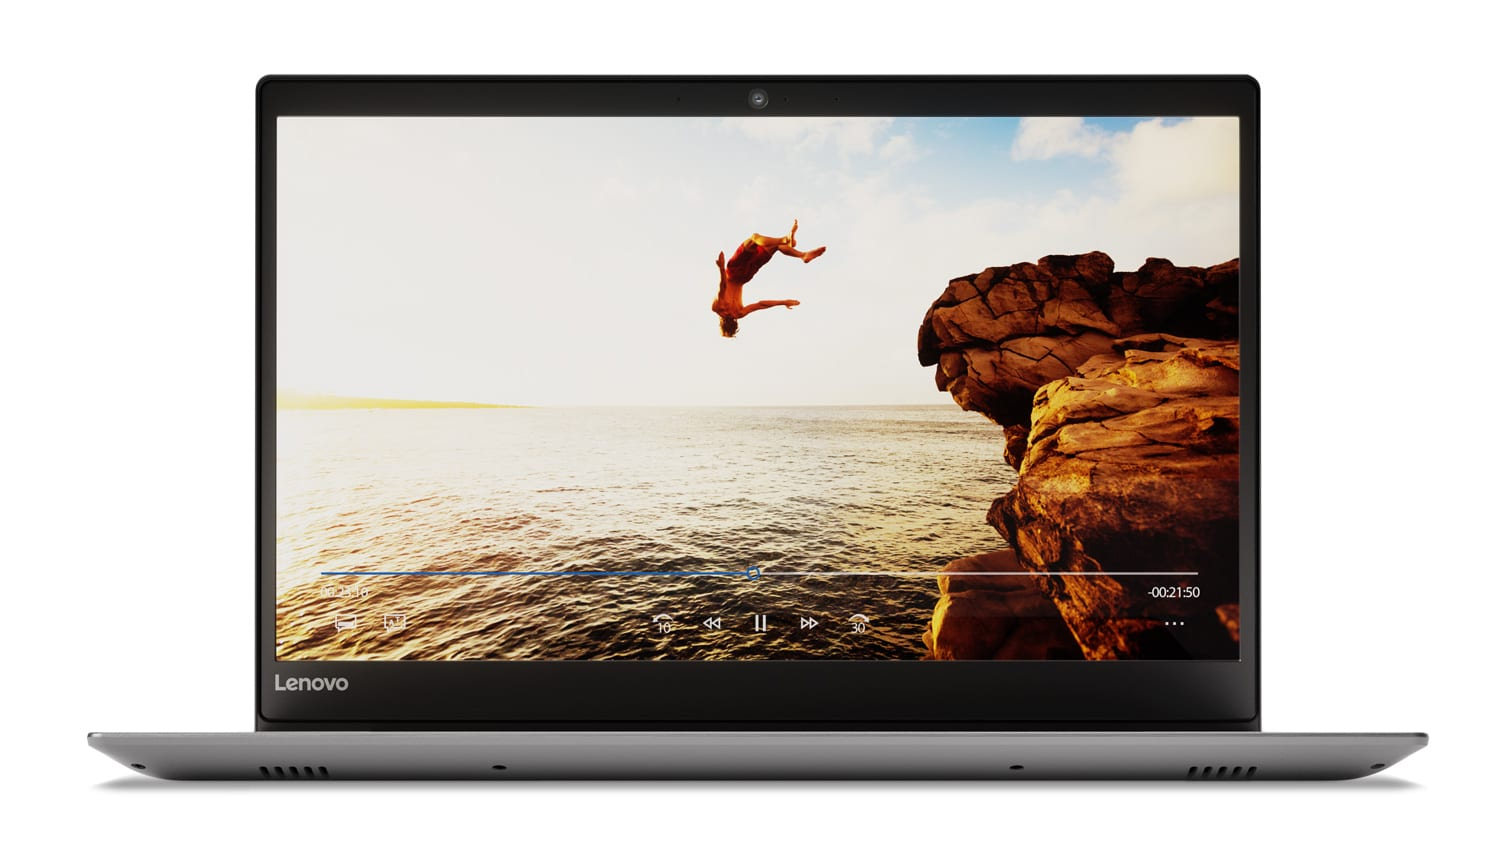 Lenovo IdeaPad 320S-15AST, ultrabook 15 pouces SSD+HDD A9 Rad 530 à 499€